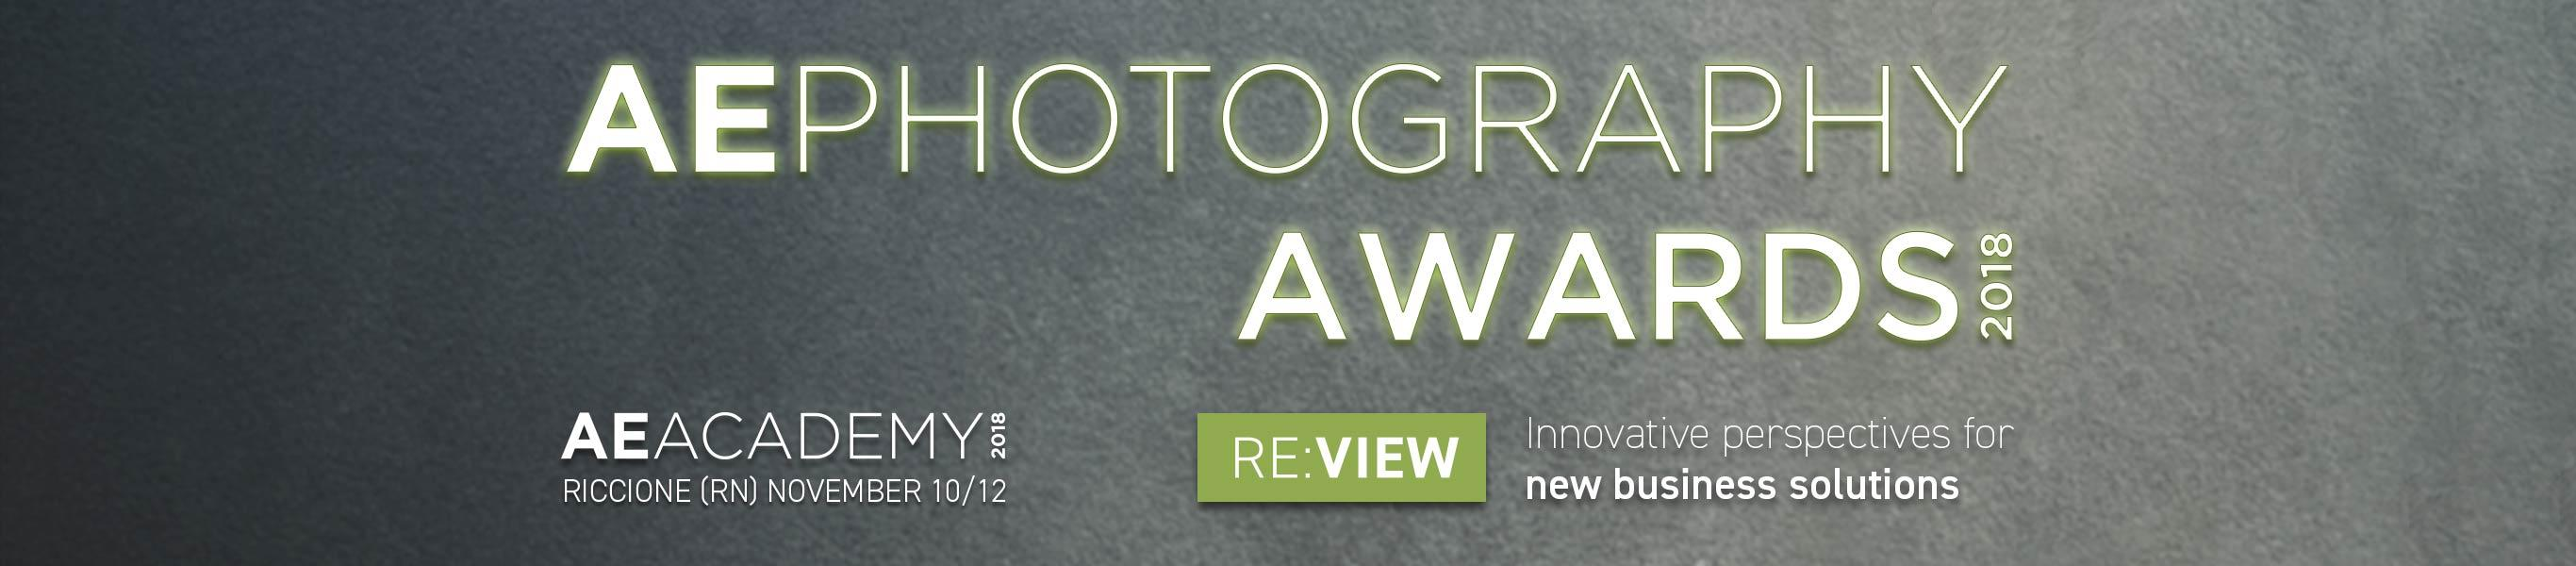 AE PHOTOGRAPHY AWARDS 2nd Edition